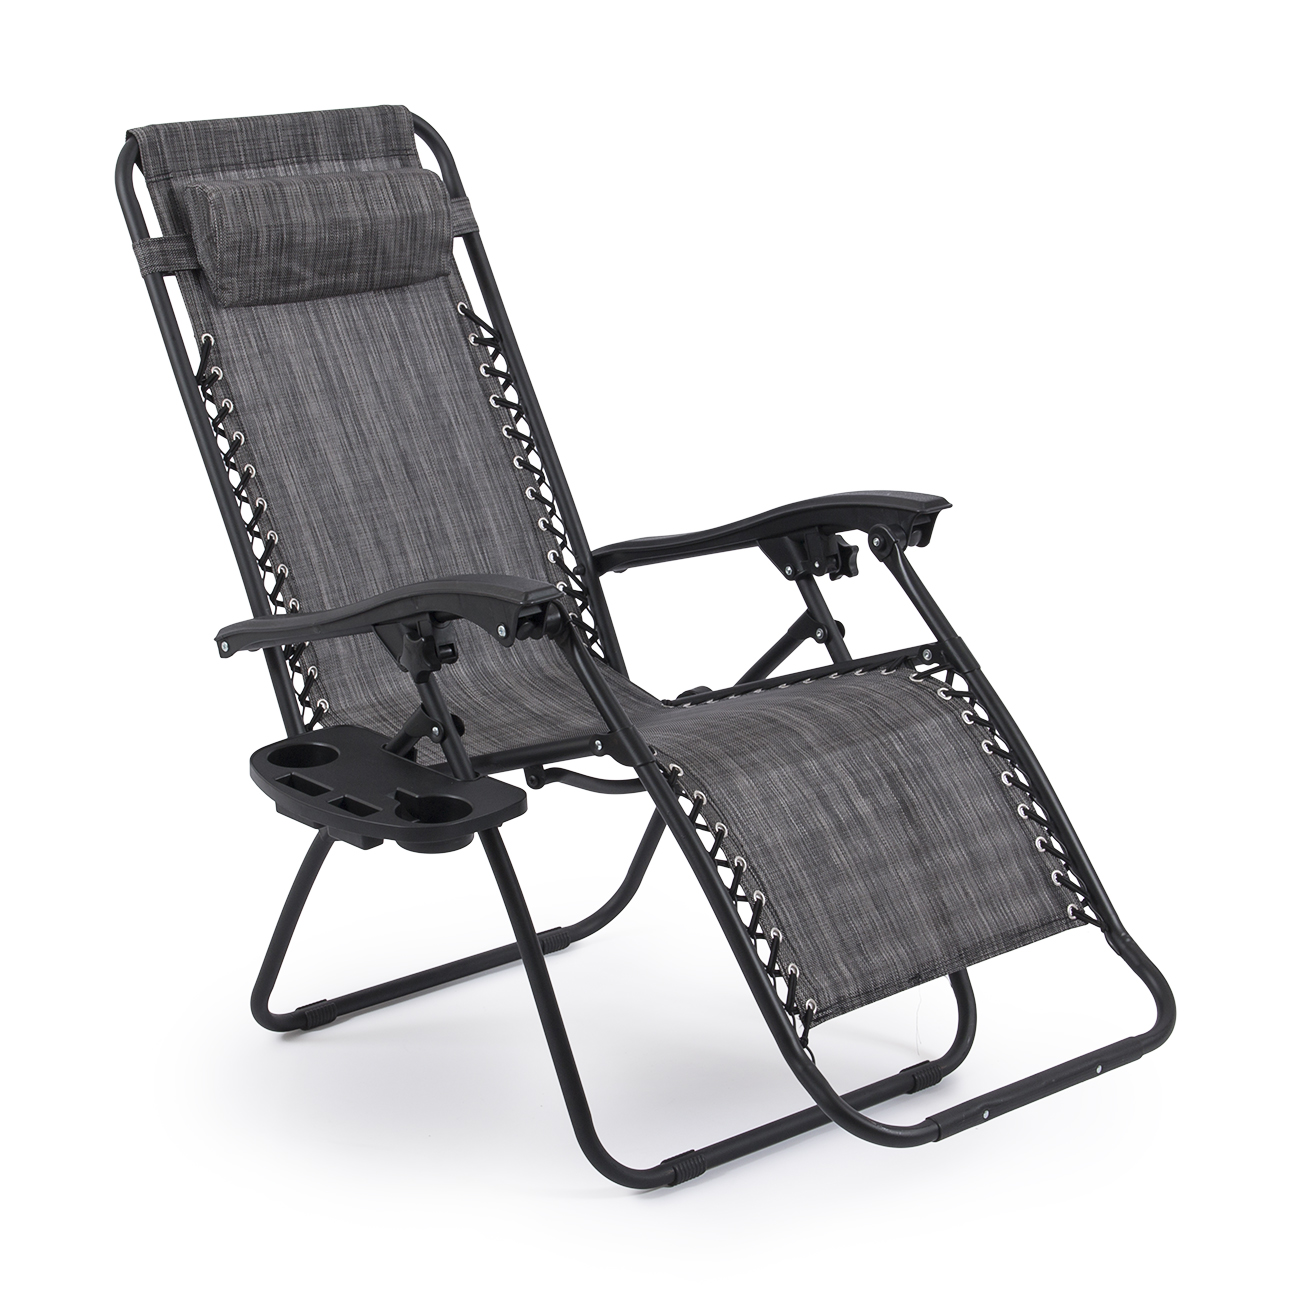 Chairs For Outdoor 2 Lounge Chair Outdoor Zero Gravity Beach Patio Pool Yard